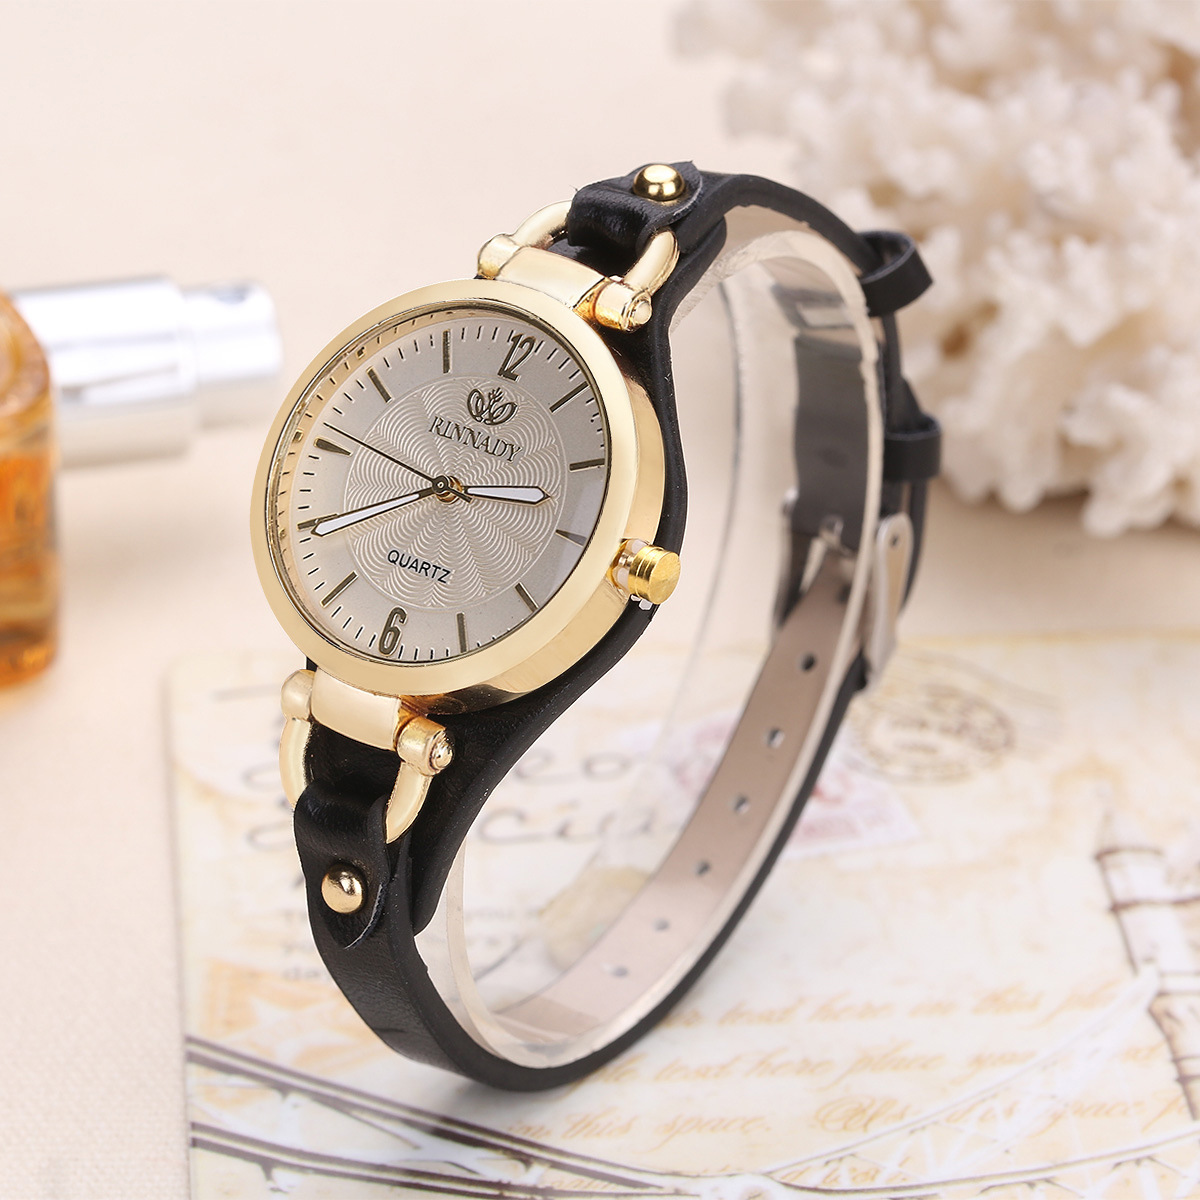 Fashionable watches for women 71